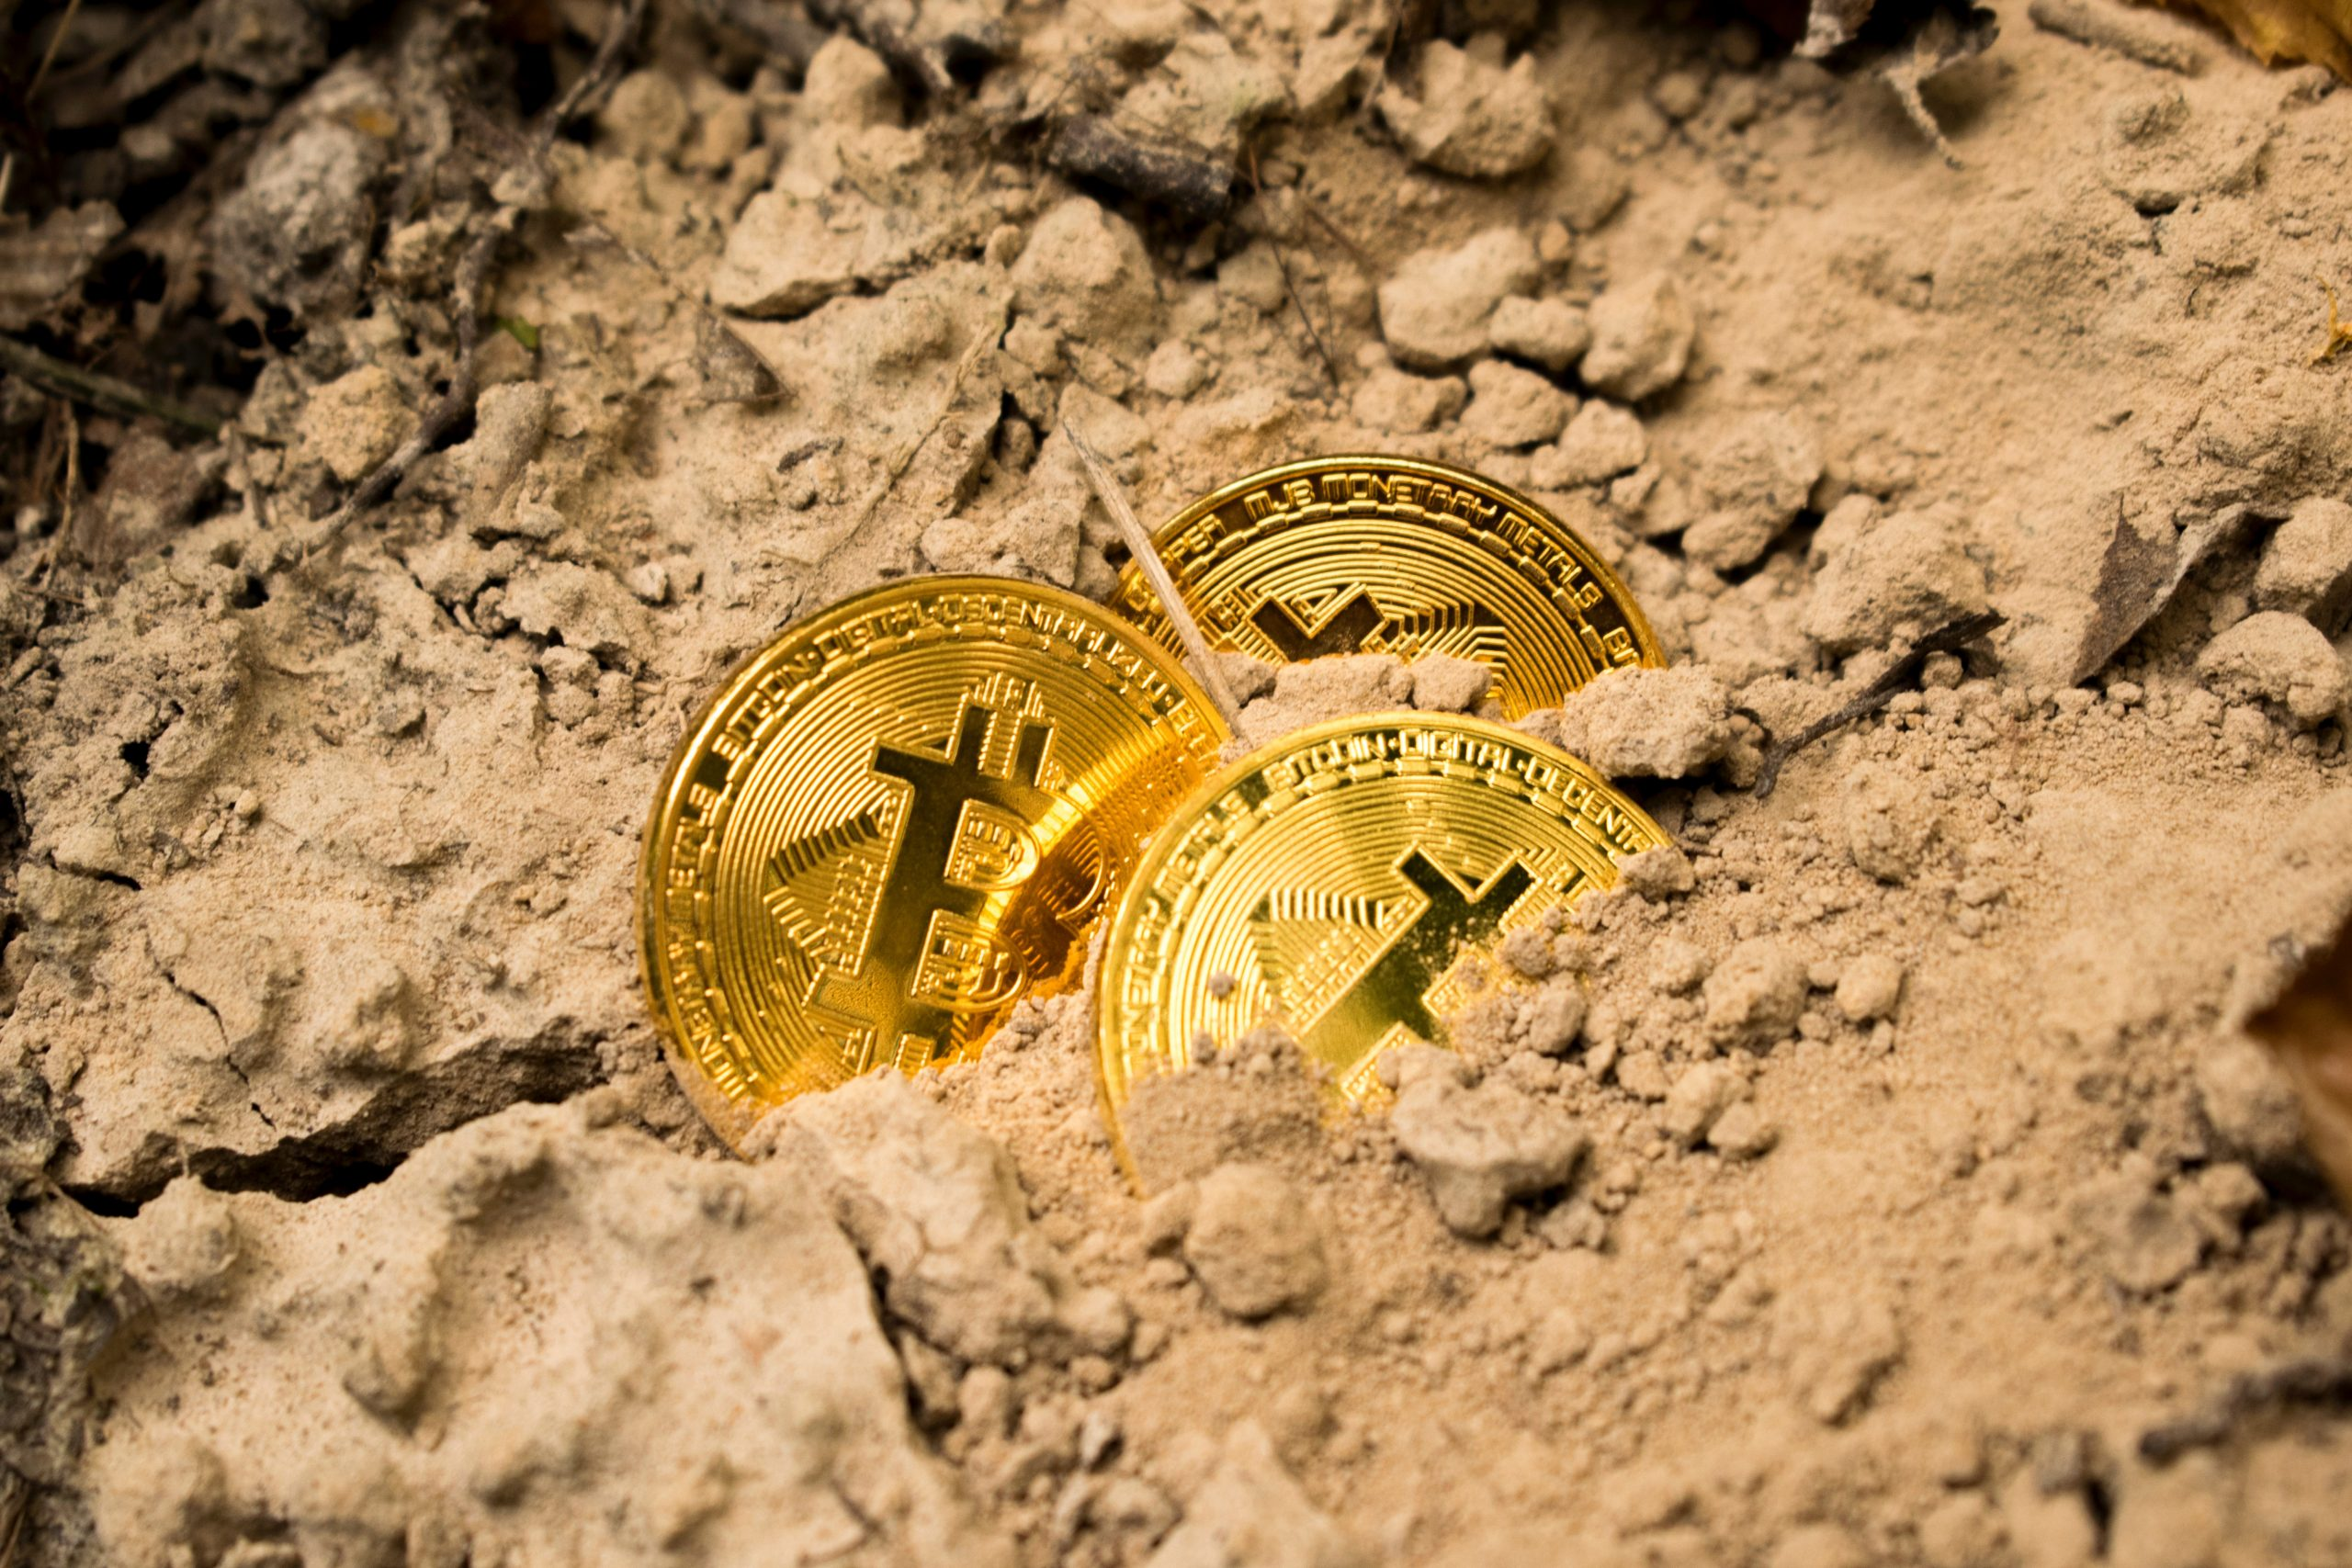 Bitcoin Price Prediction 2021 How Much Will Bitcoin Be Worth In 2025 2